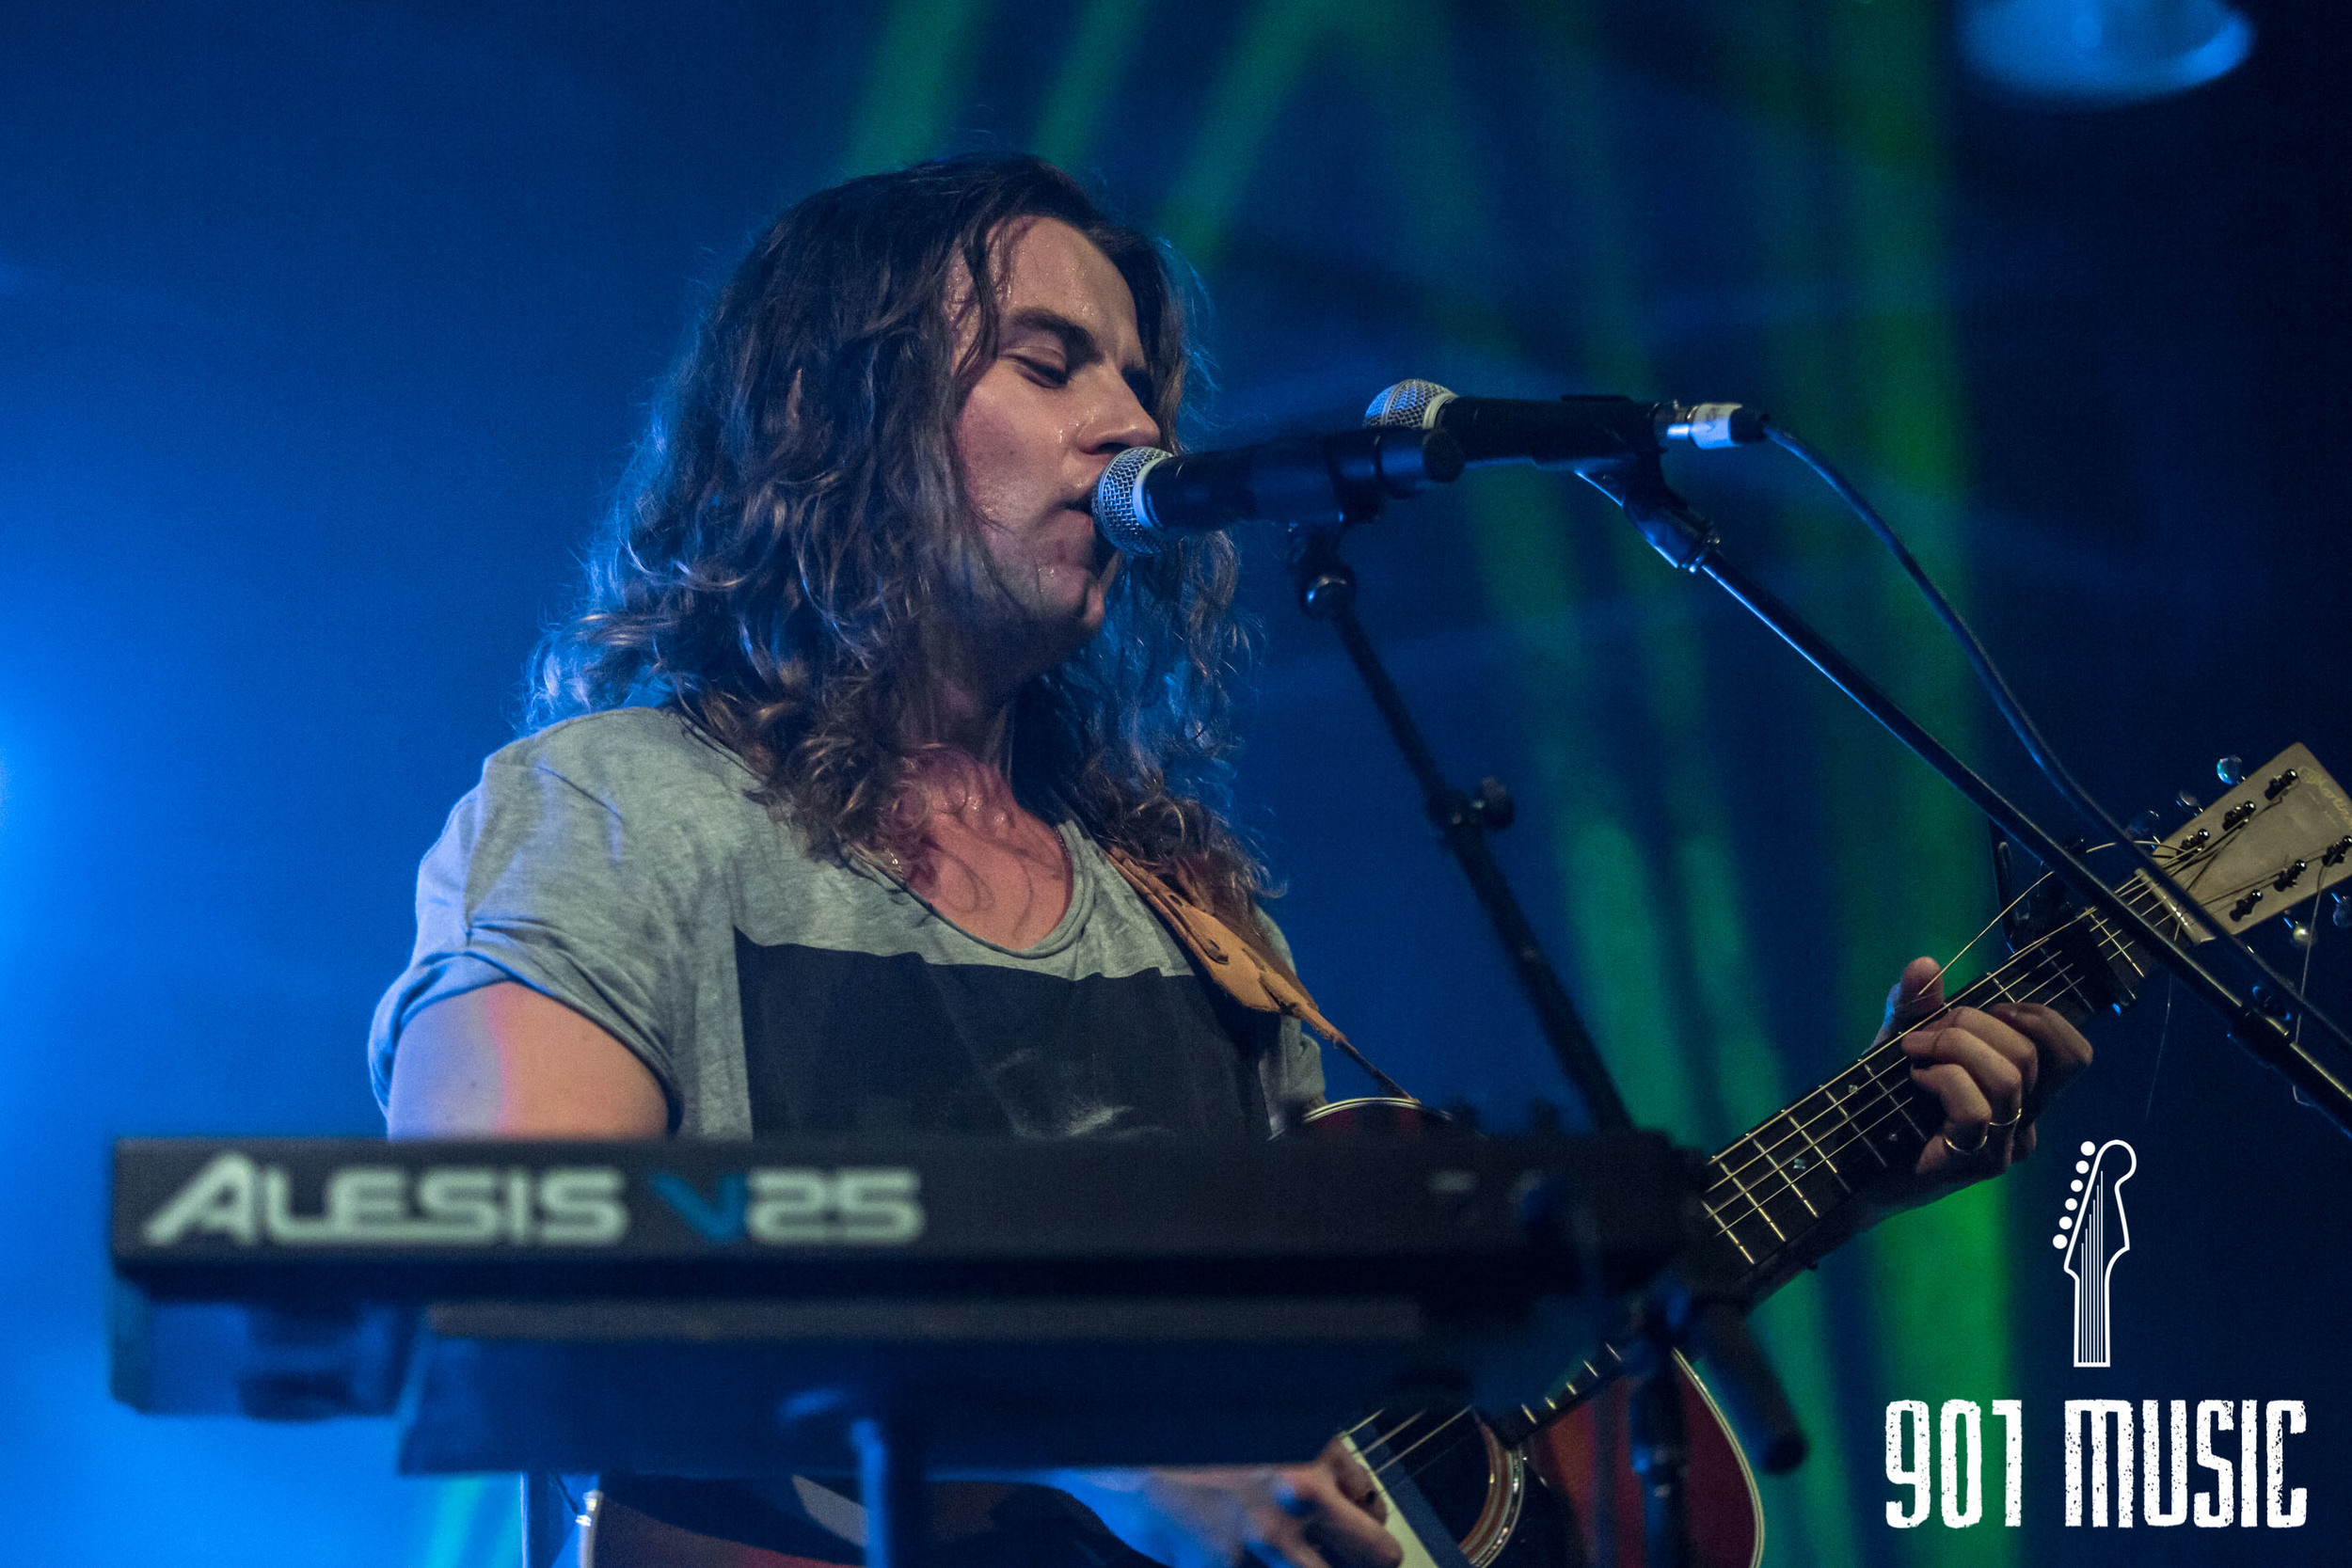 na-02122016-Judah and the Lion-11.jpg